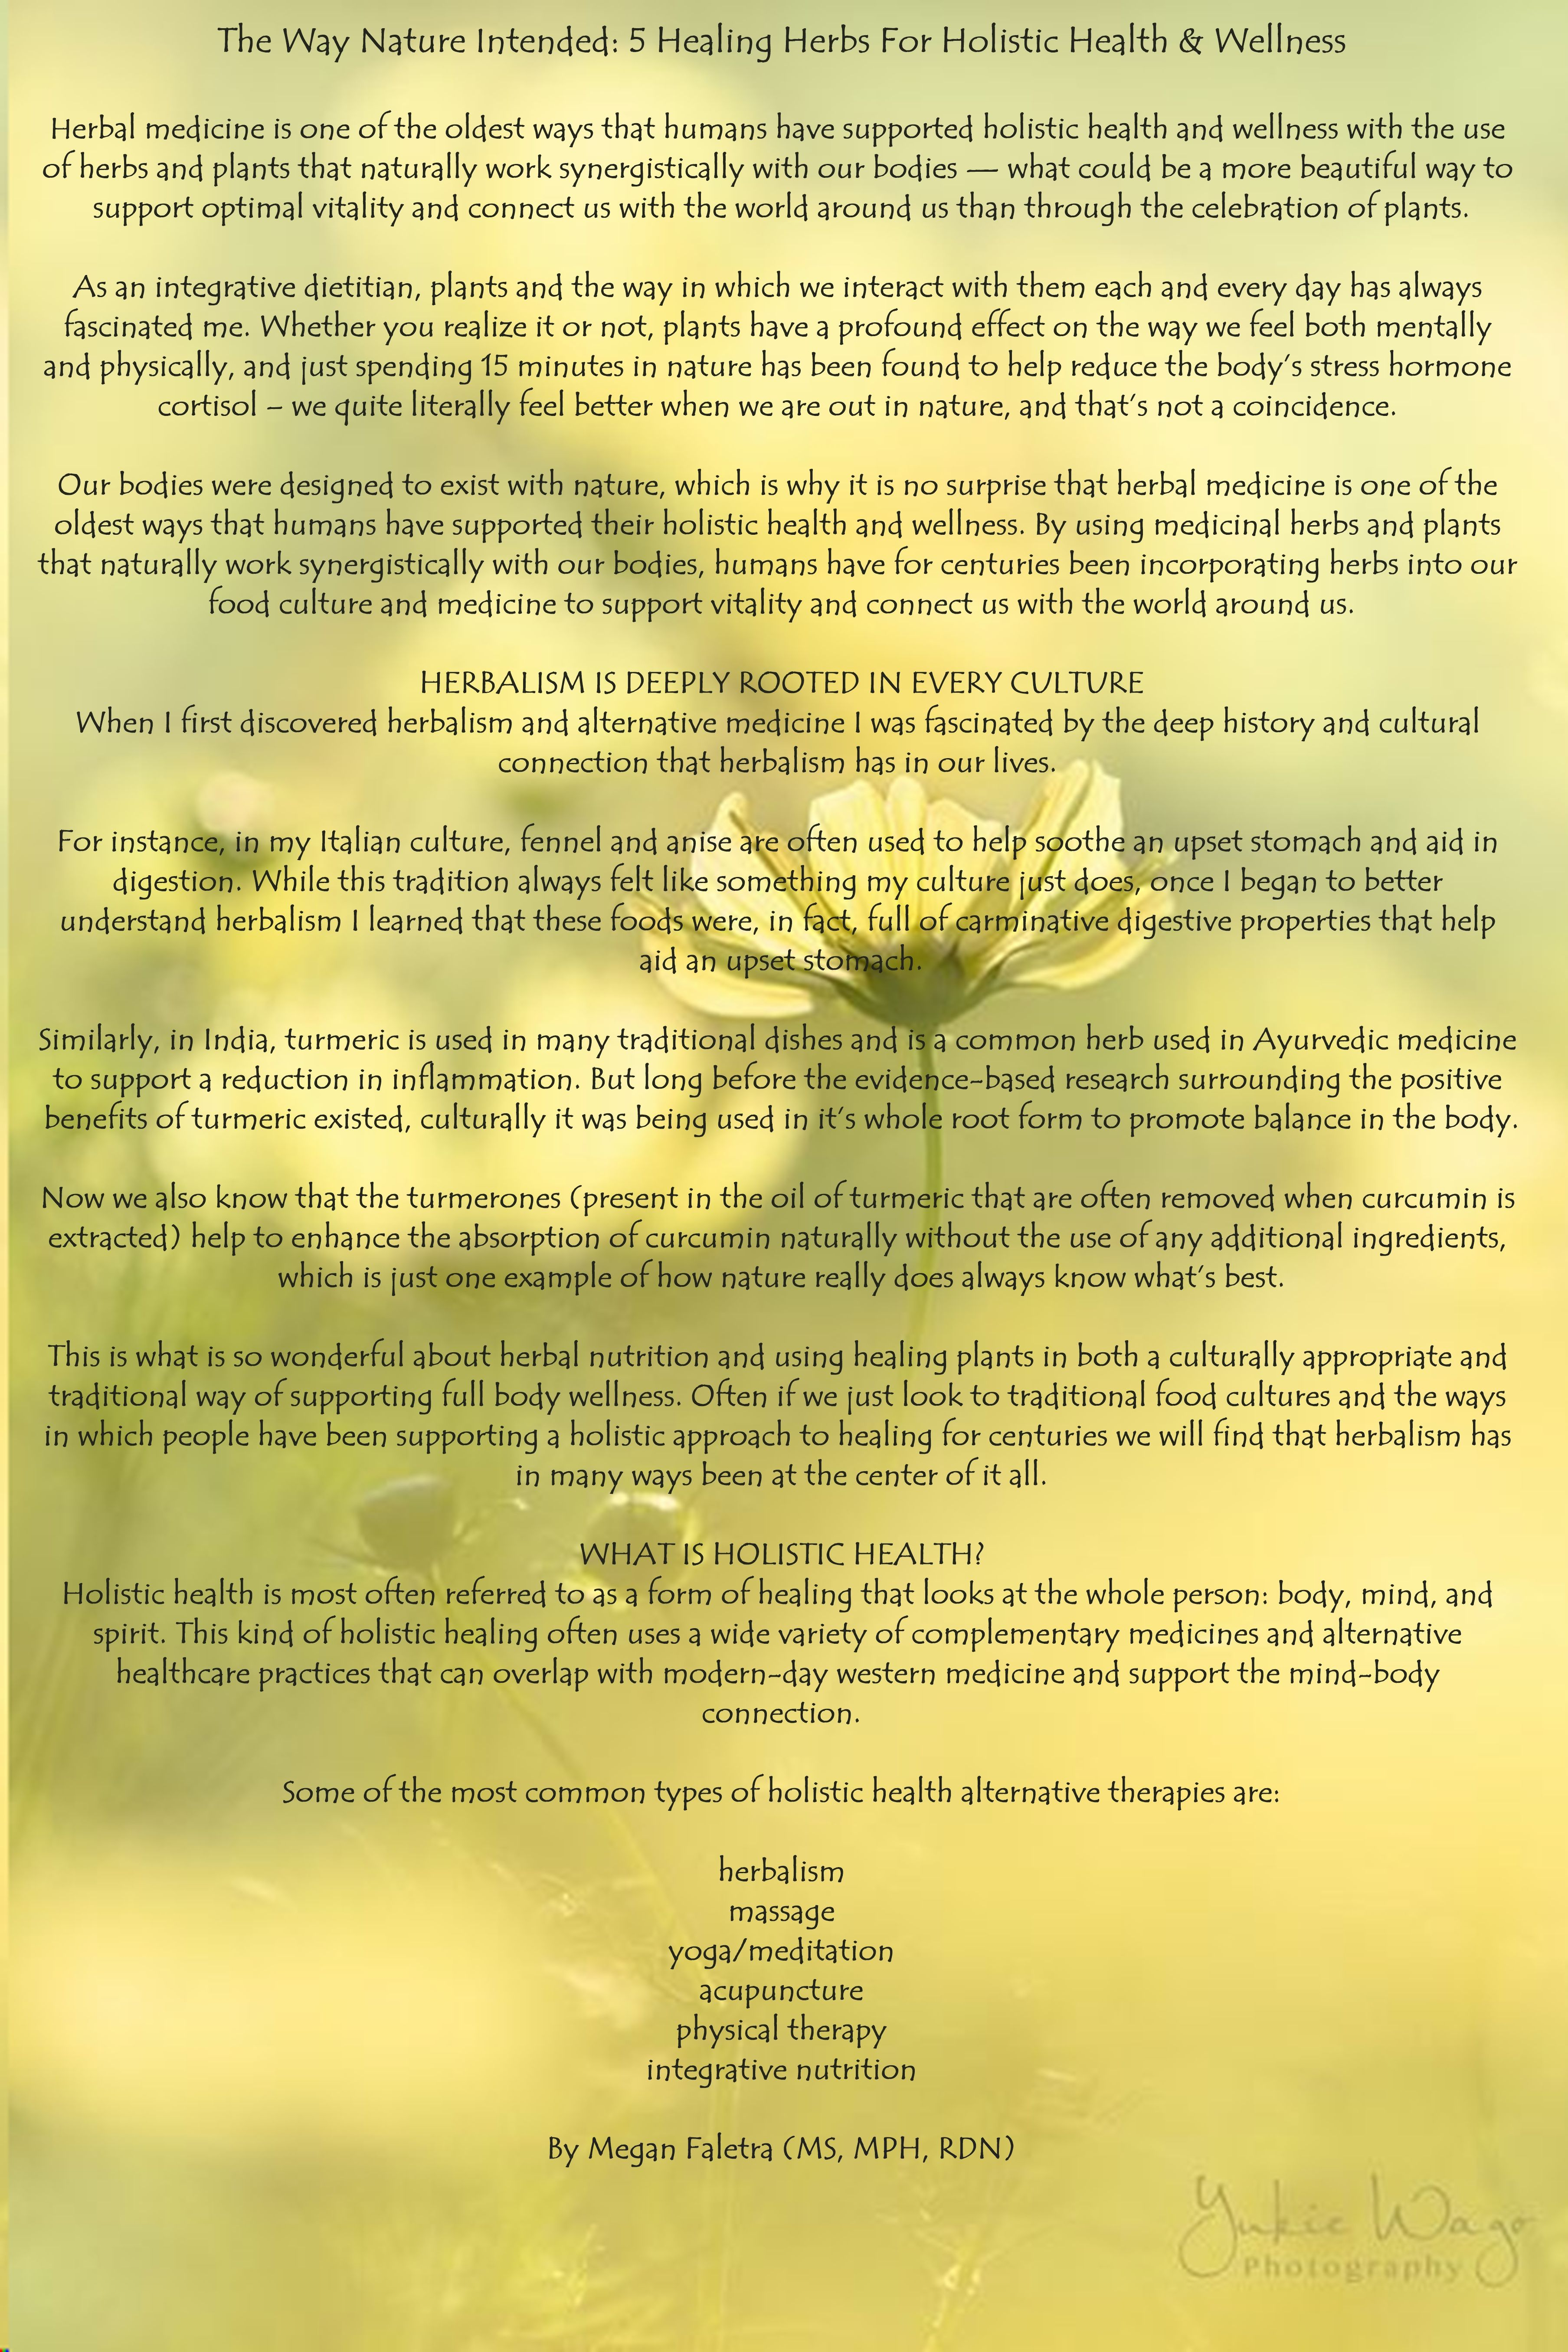 The Way Nature Intended 5 Healing Herbs For Holistic Health Wellness Holistic Health Healing Herbs Health And Wellness